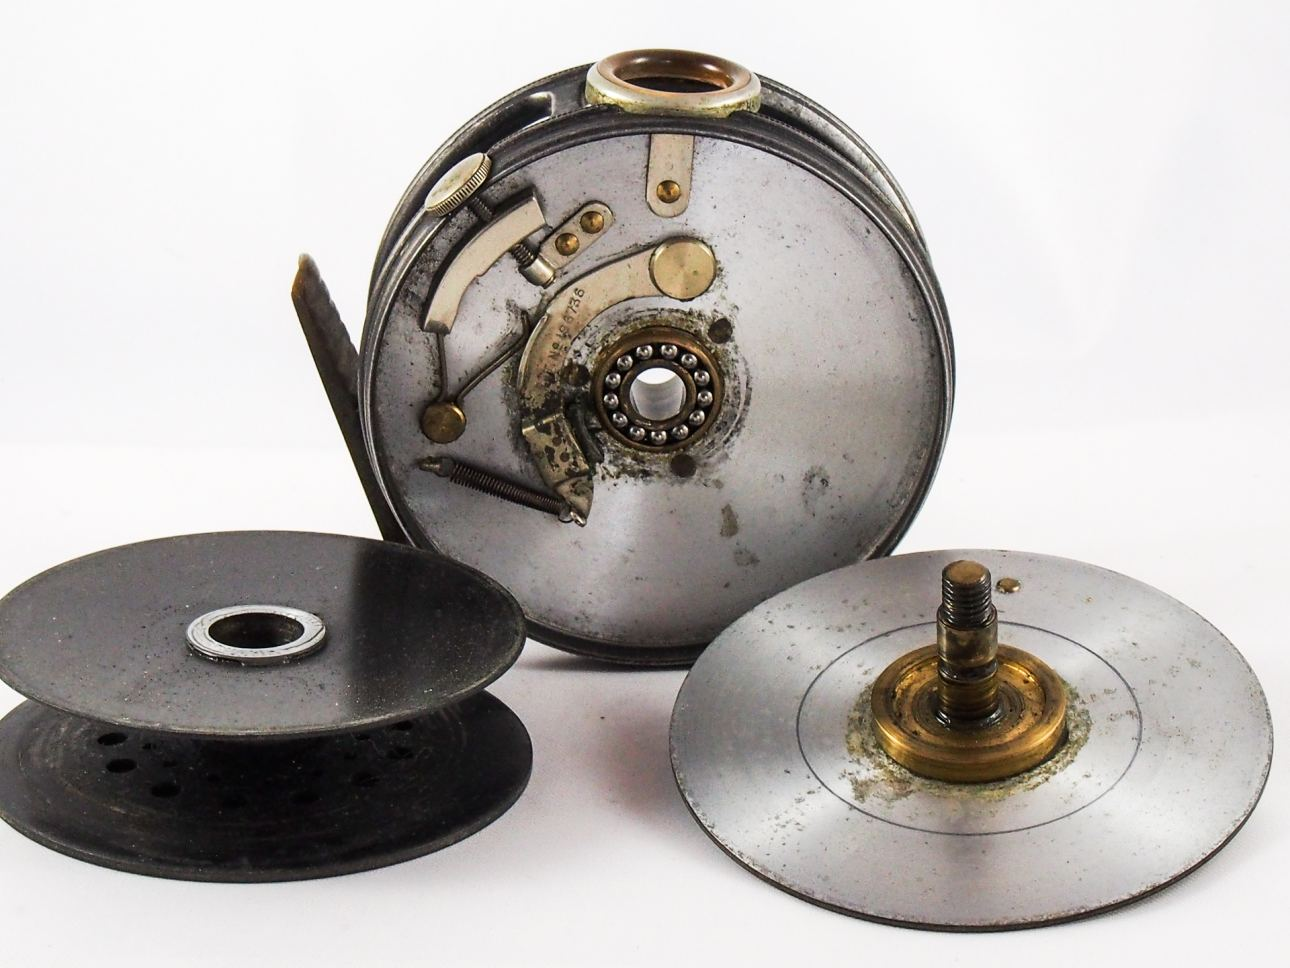 Dating hardy perfect reels Fly Reels of the House of Hardy by Glenn Stockwell